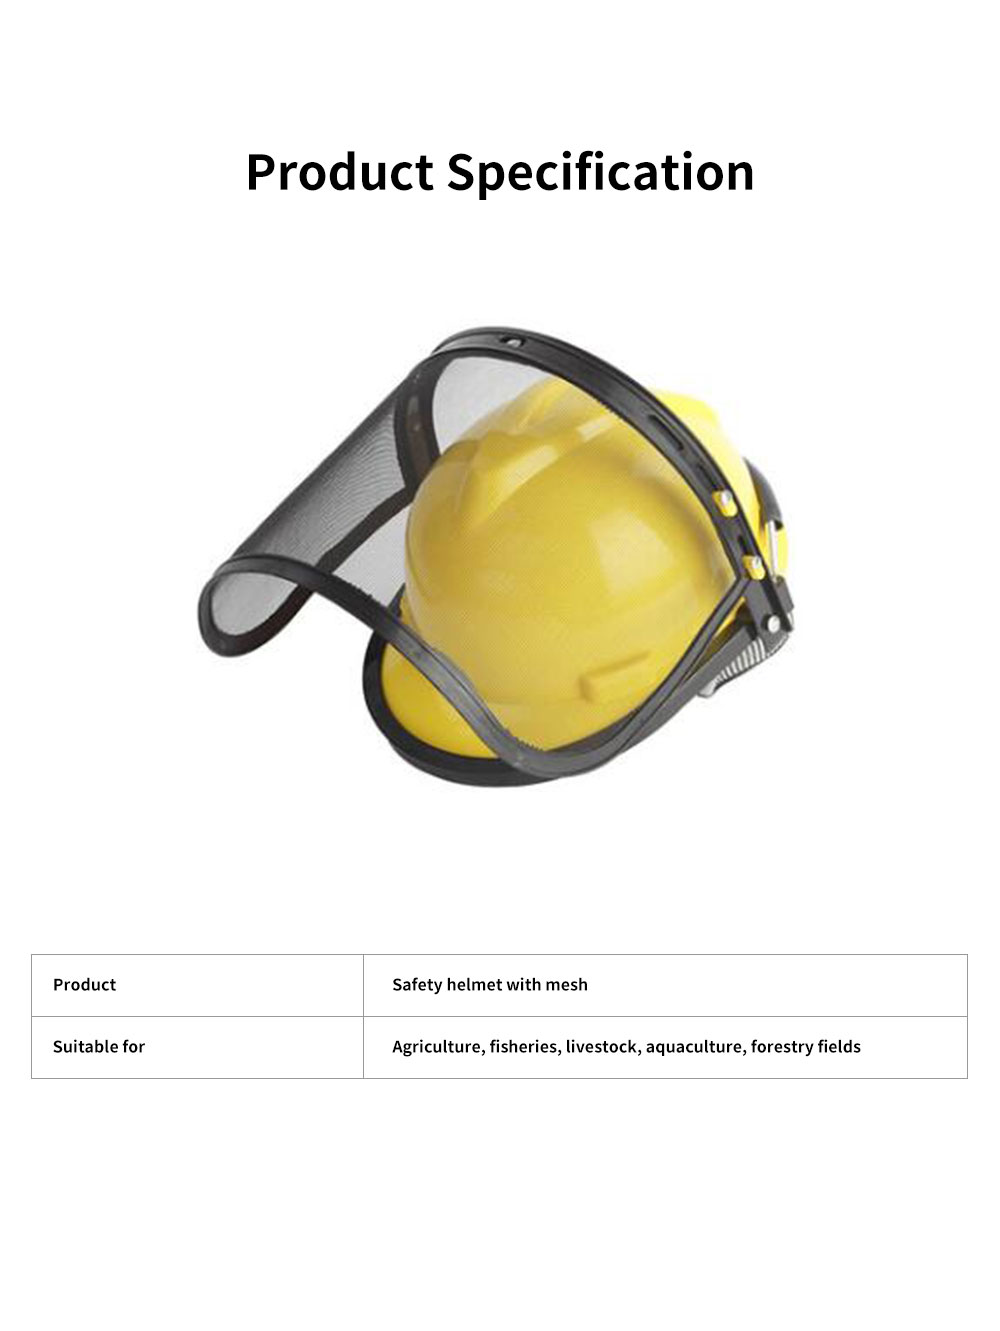 Gardening Safety Helmet Full Face Mask For Glass Cutter With Steel Mesh Visor Protective Earmuff Industrial Helmet Safety Face Shield 5